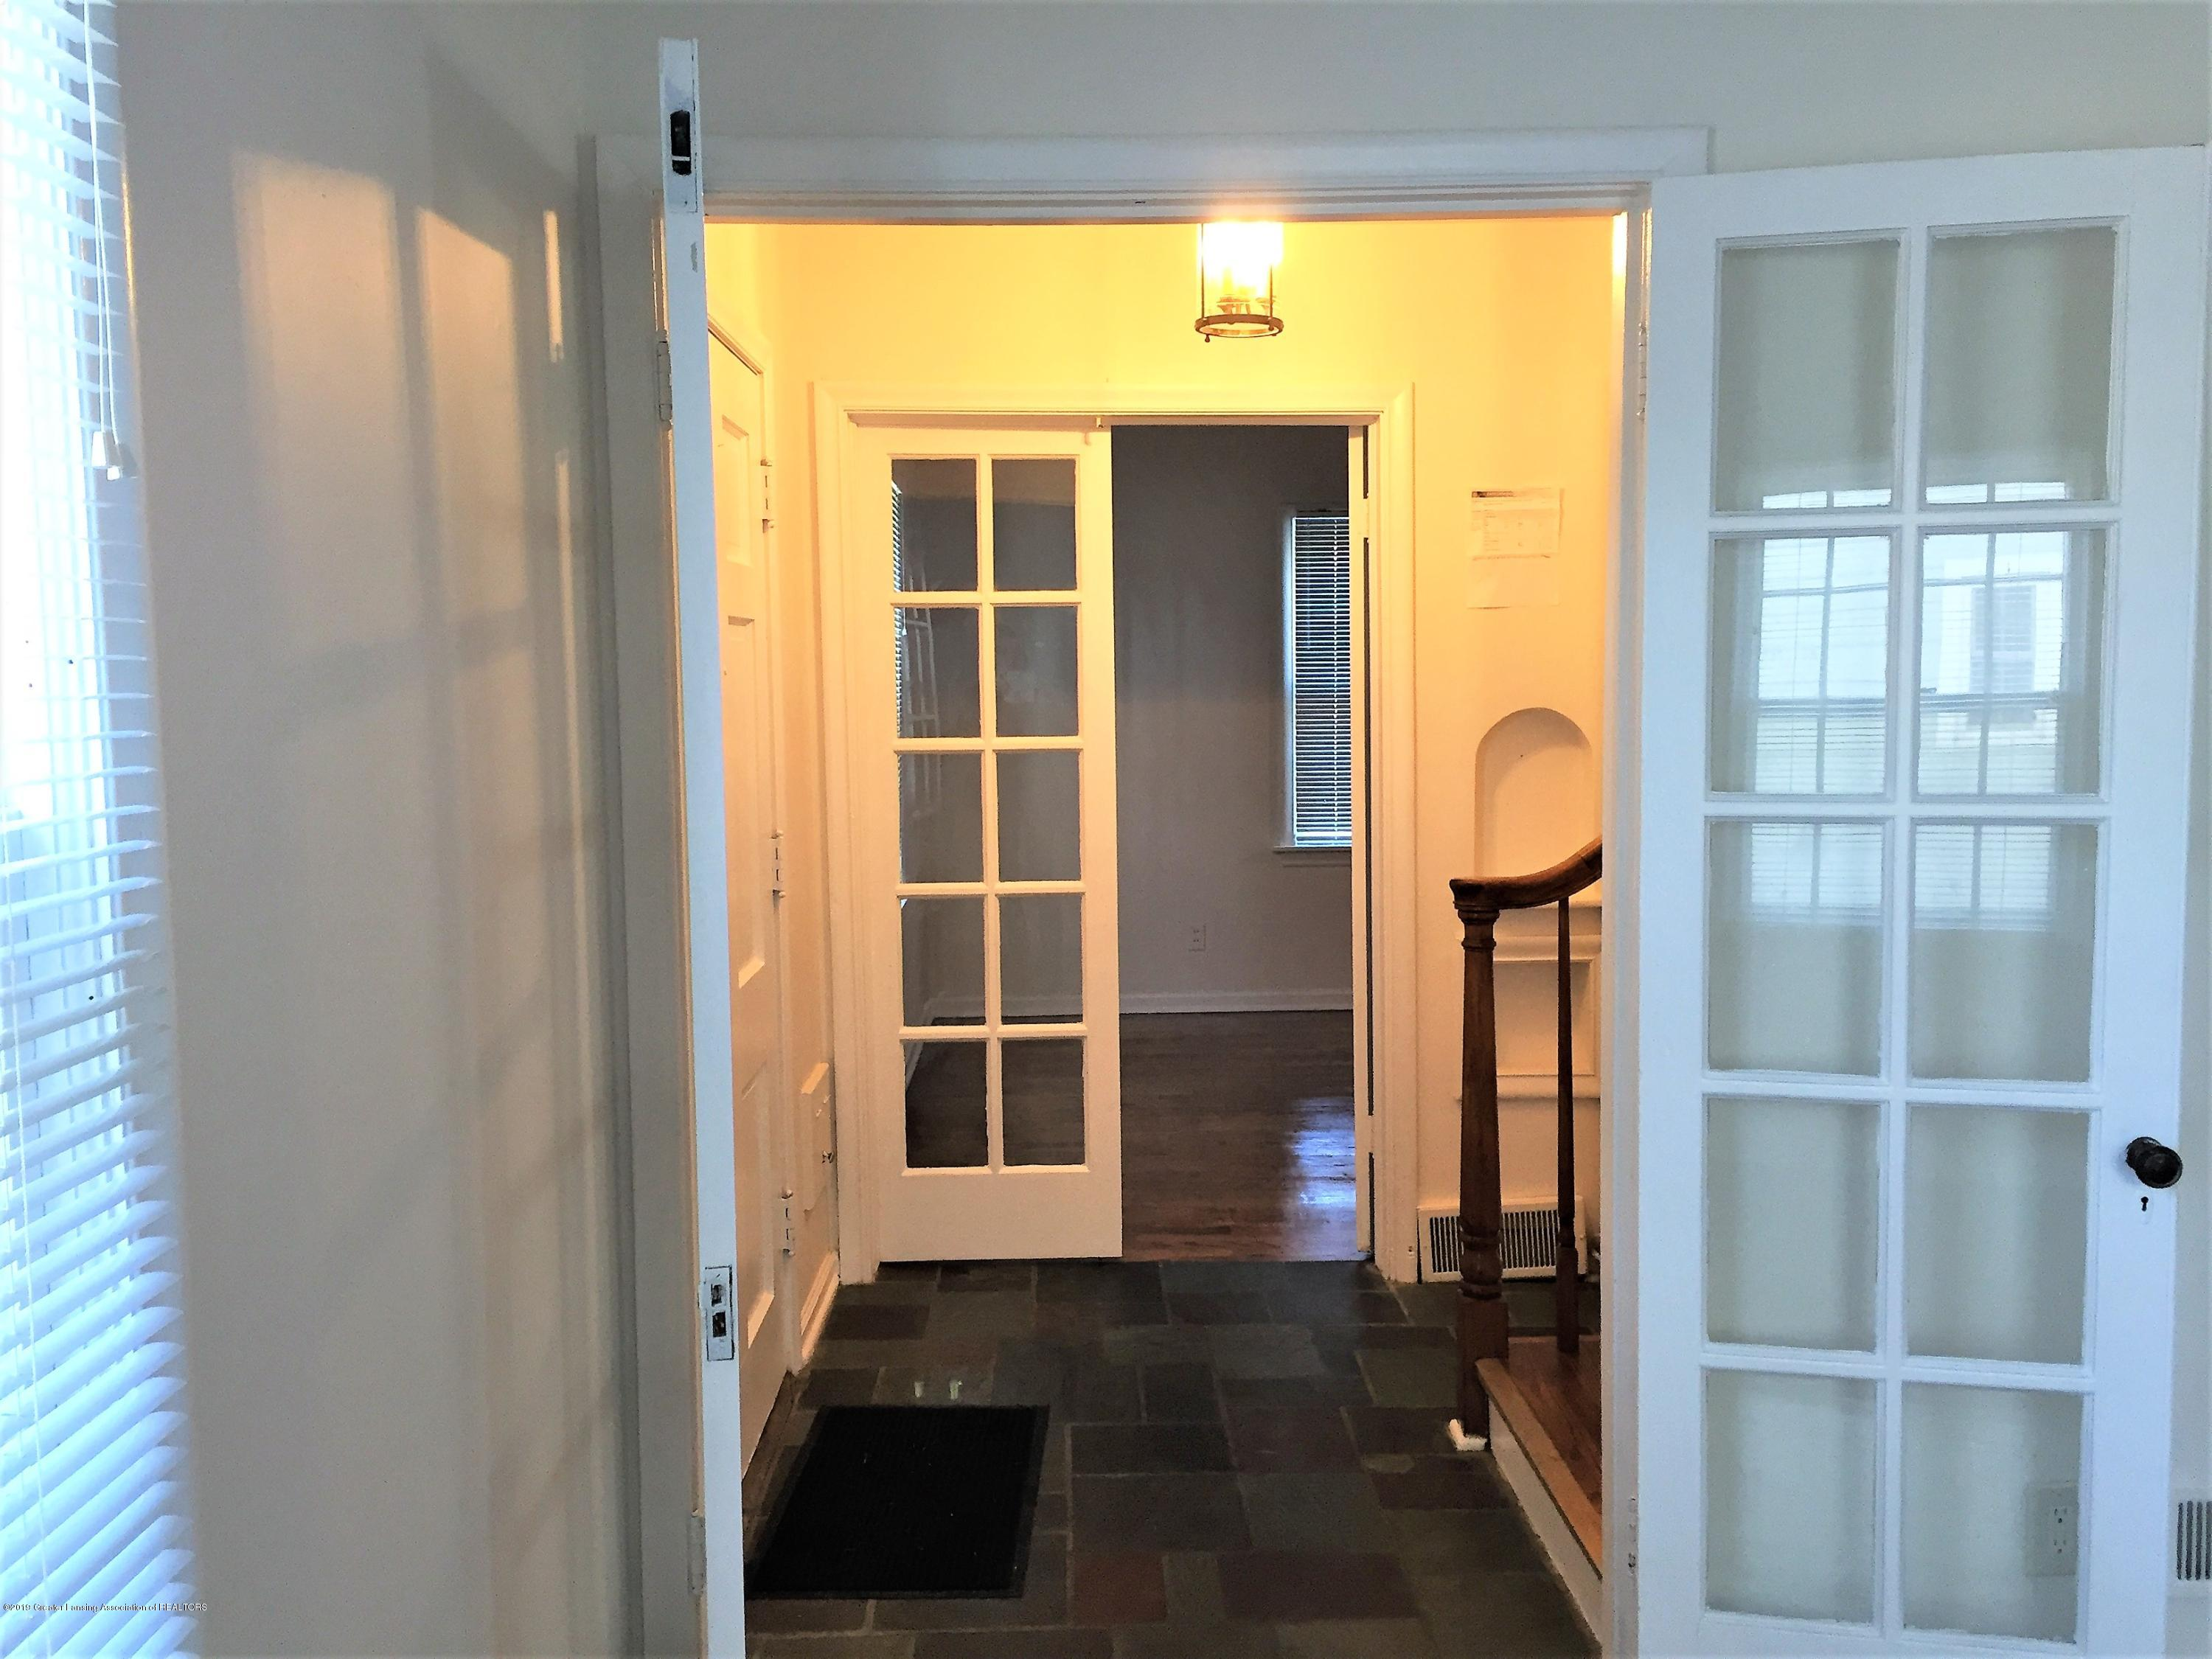 240 Orchard St - 2 Foyer - 2